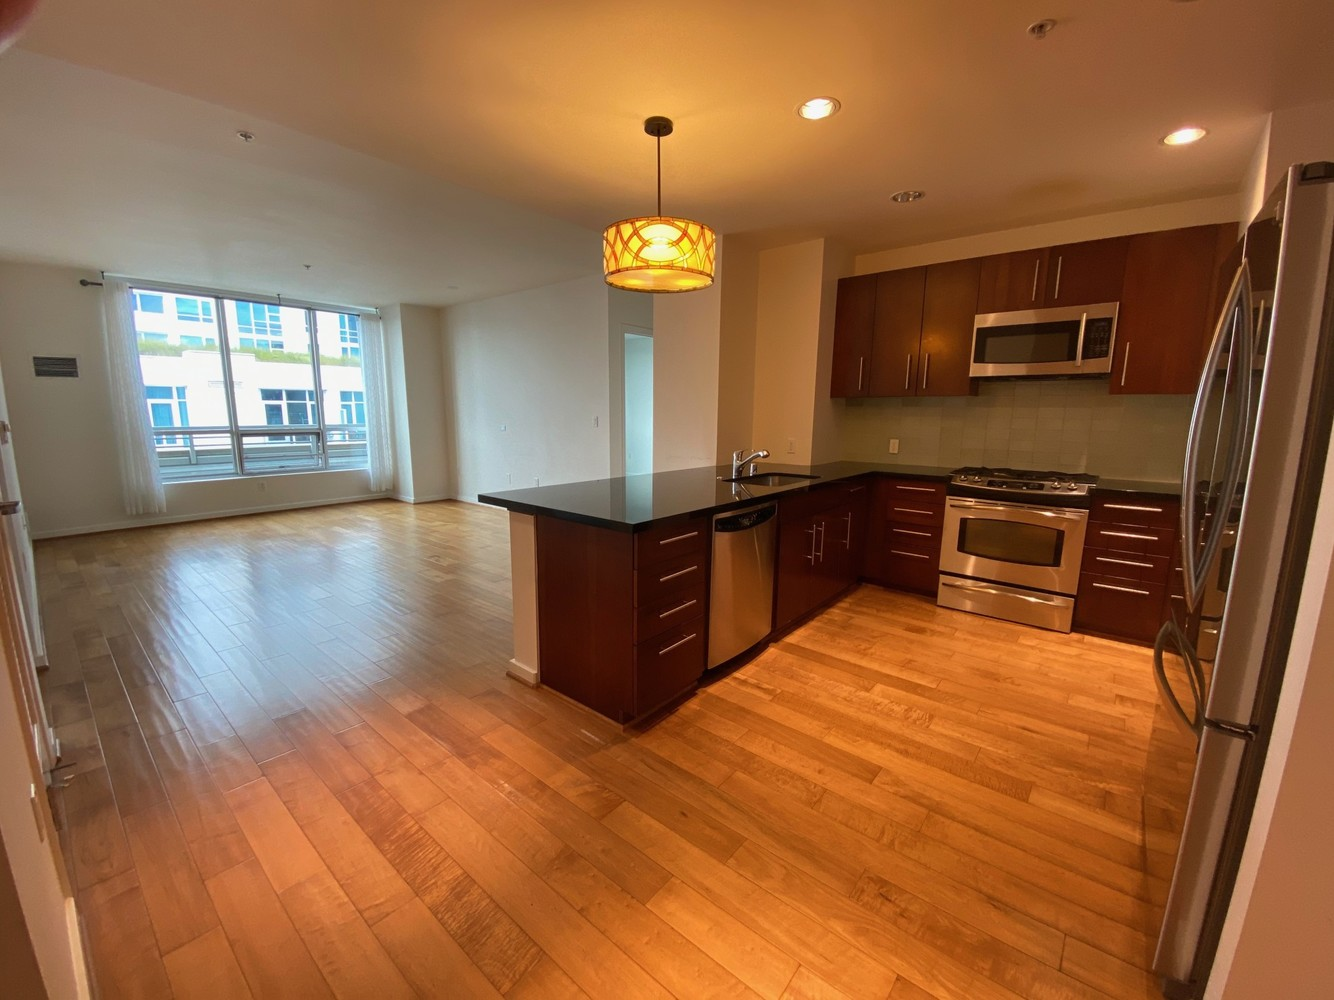 325 Berry Street, Unit 616 San Francisco, CA 94158